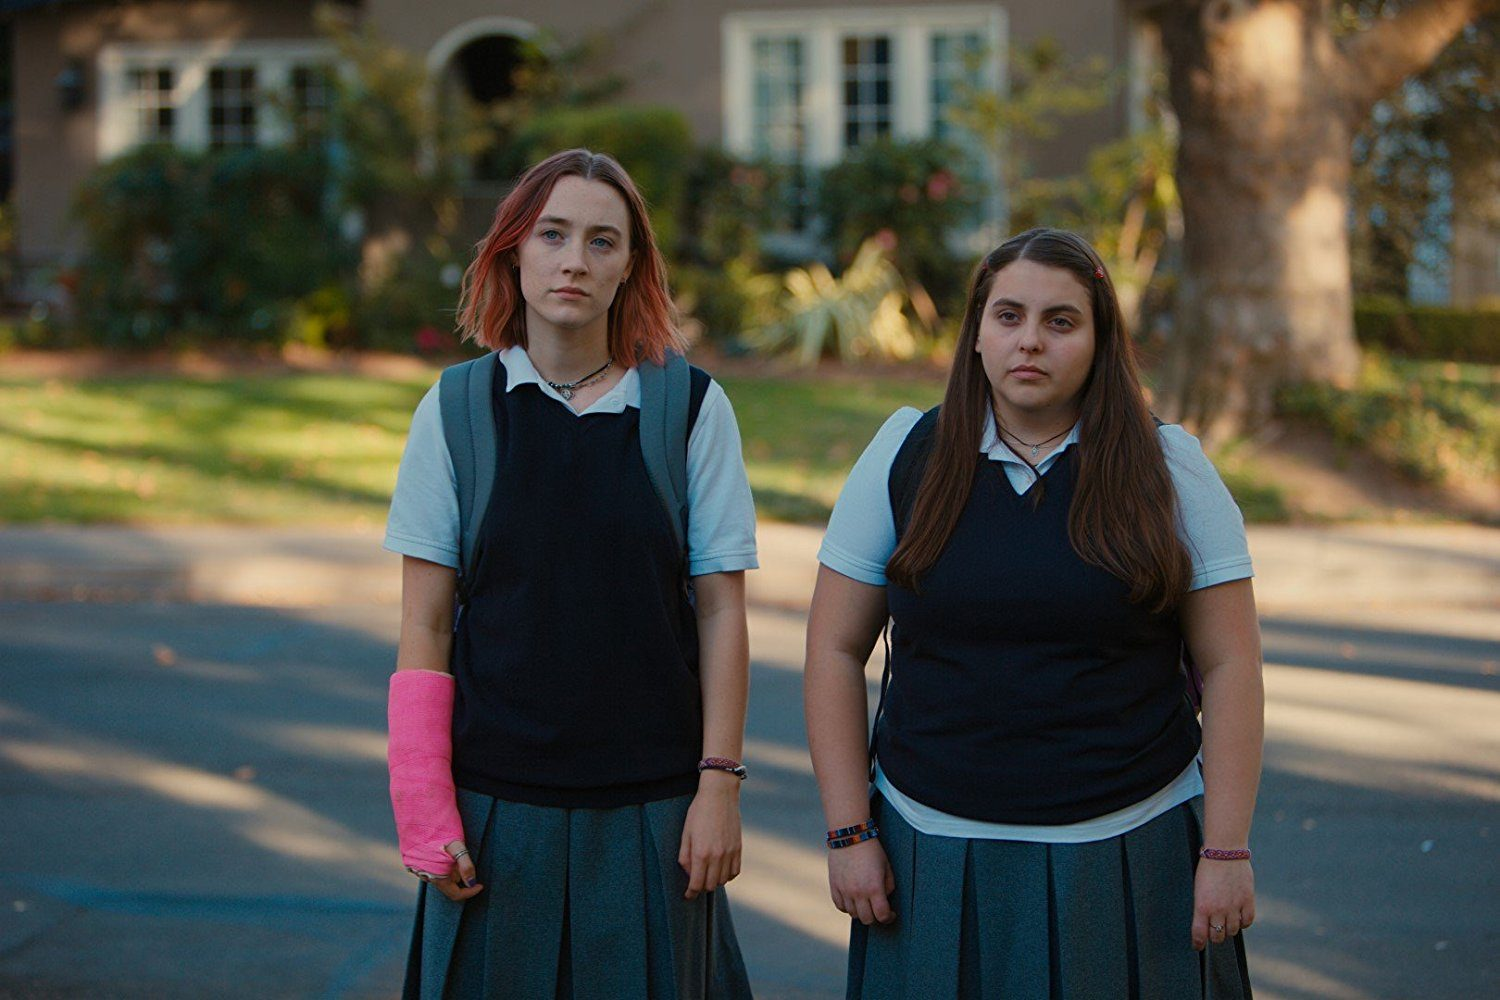 Crítica: Lady Bird: A Hora de Voar (Lady Bird, EUA, 2018)